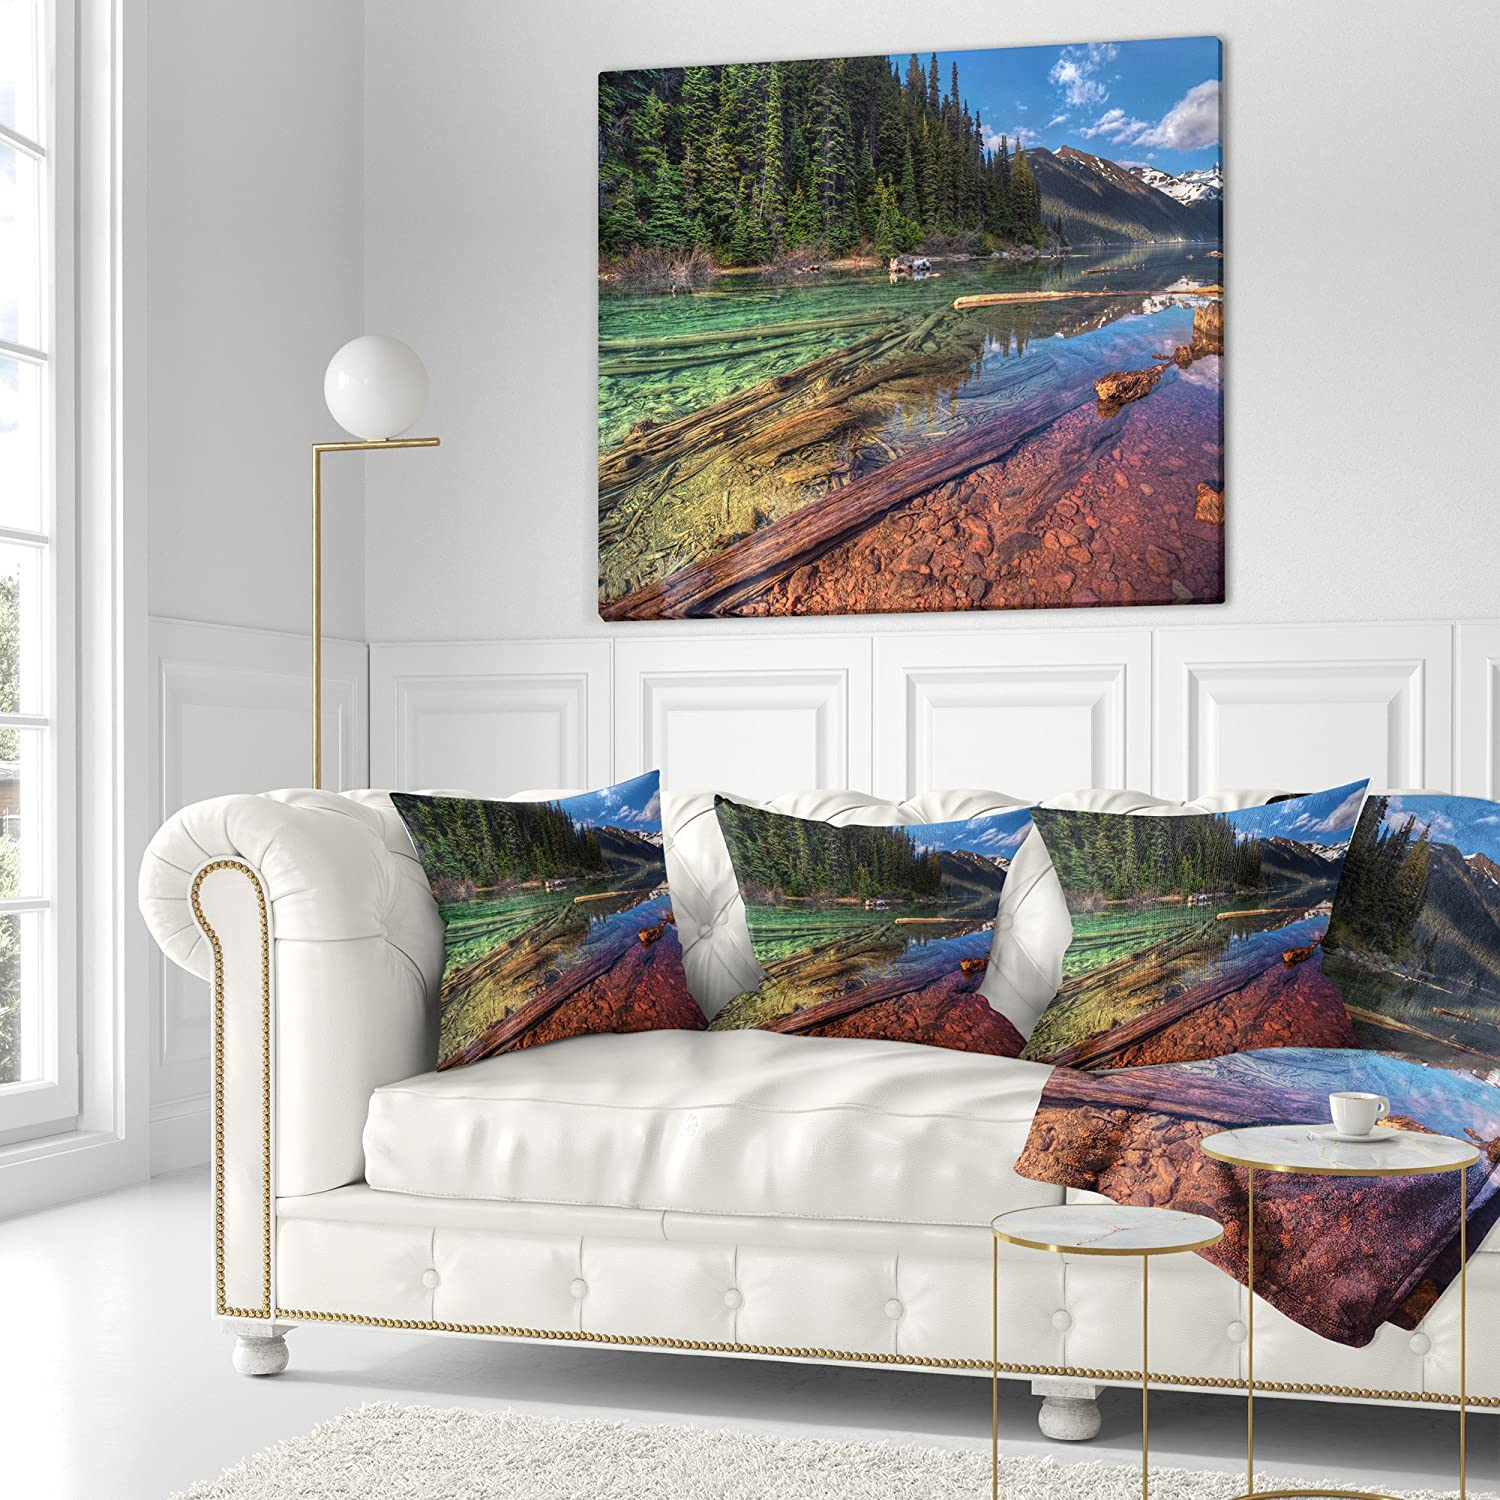 Designart Cu14448 26 26 Beautiful View Of Mountain Lake Landscape Printed Cushion Cover For Living Room